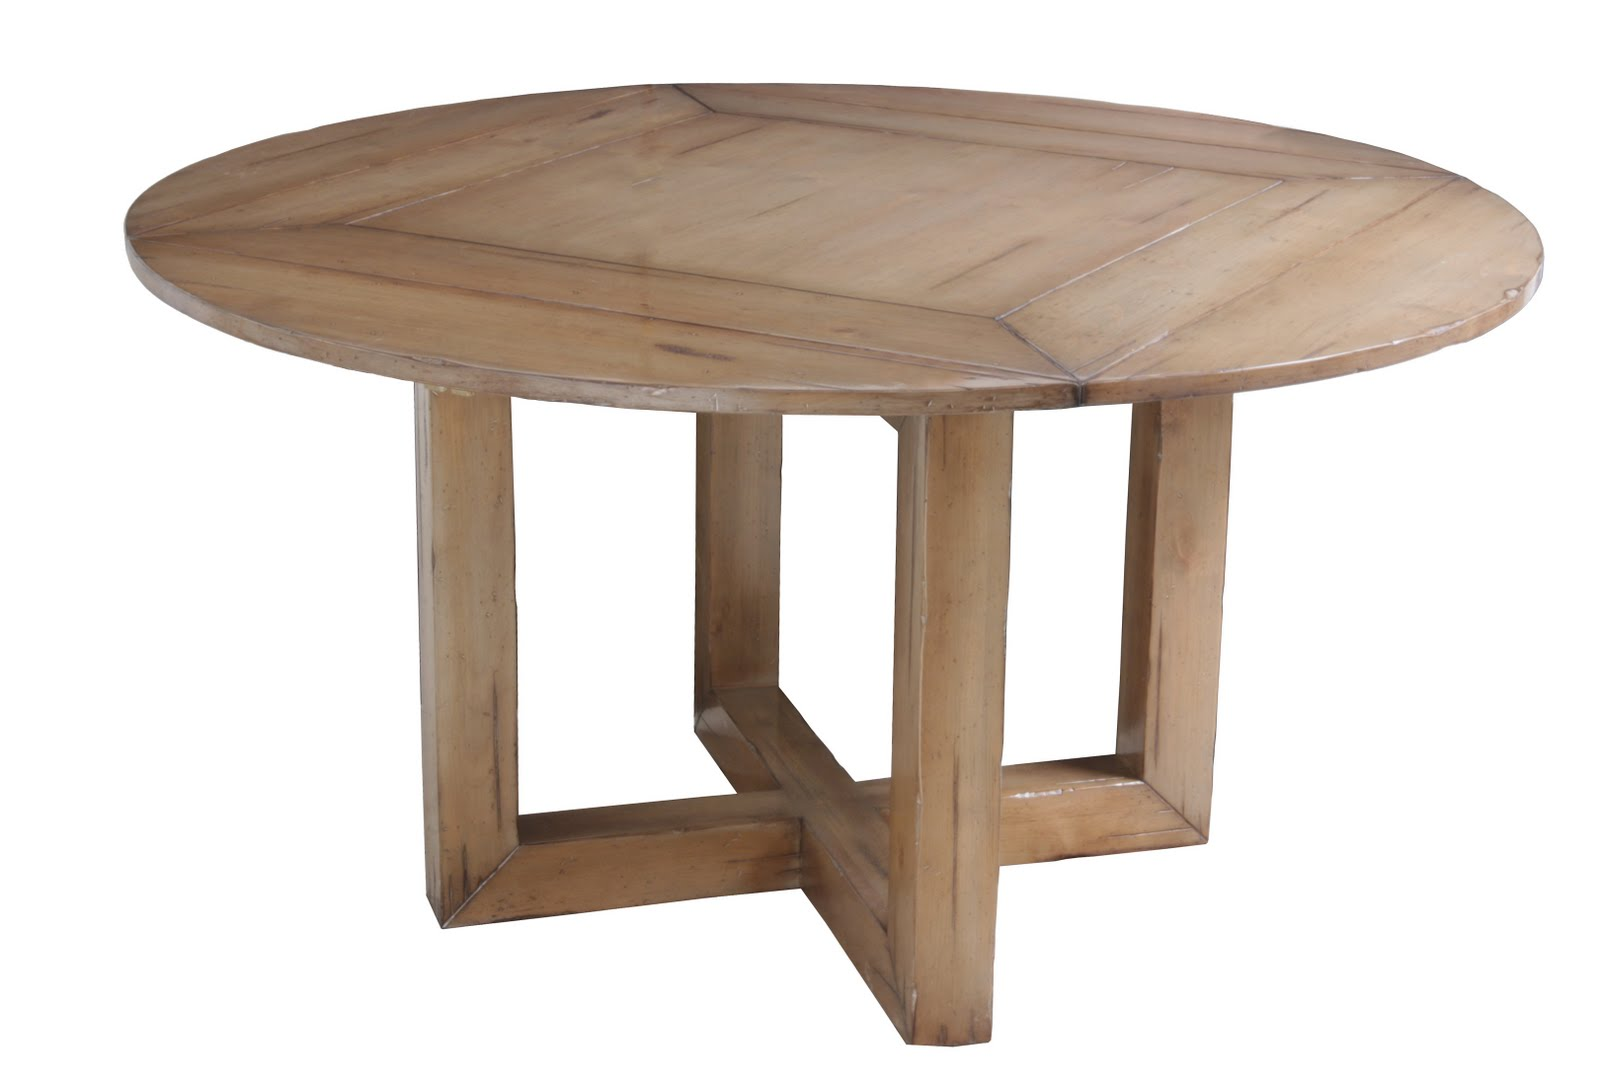 Square Type Of Legs Table